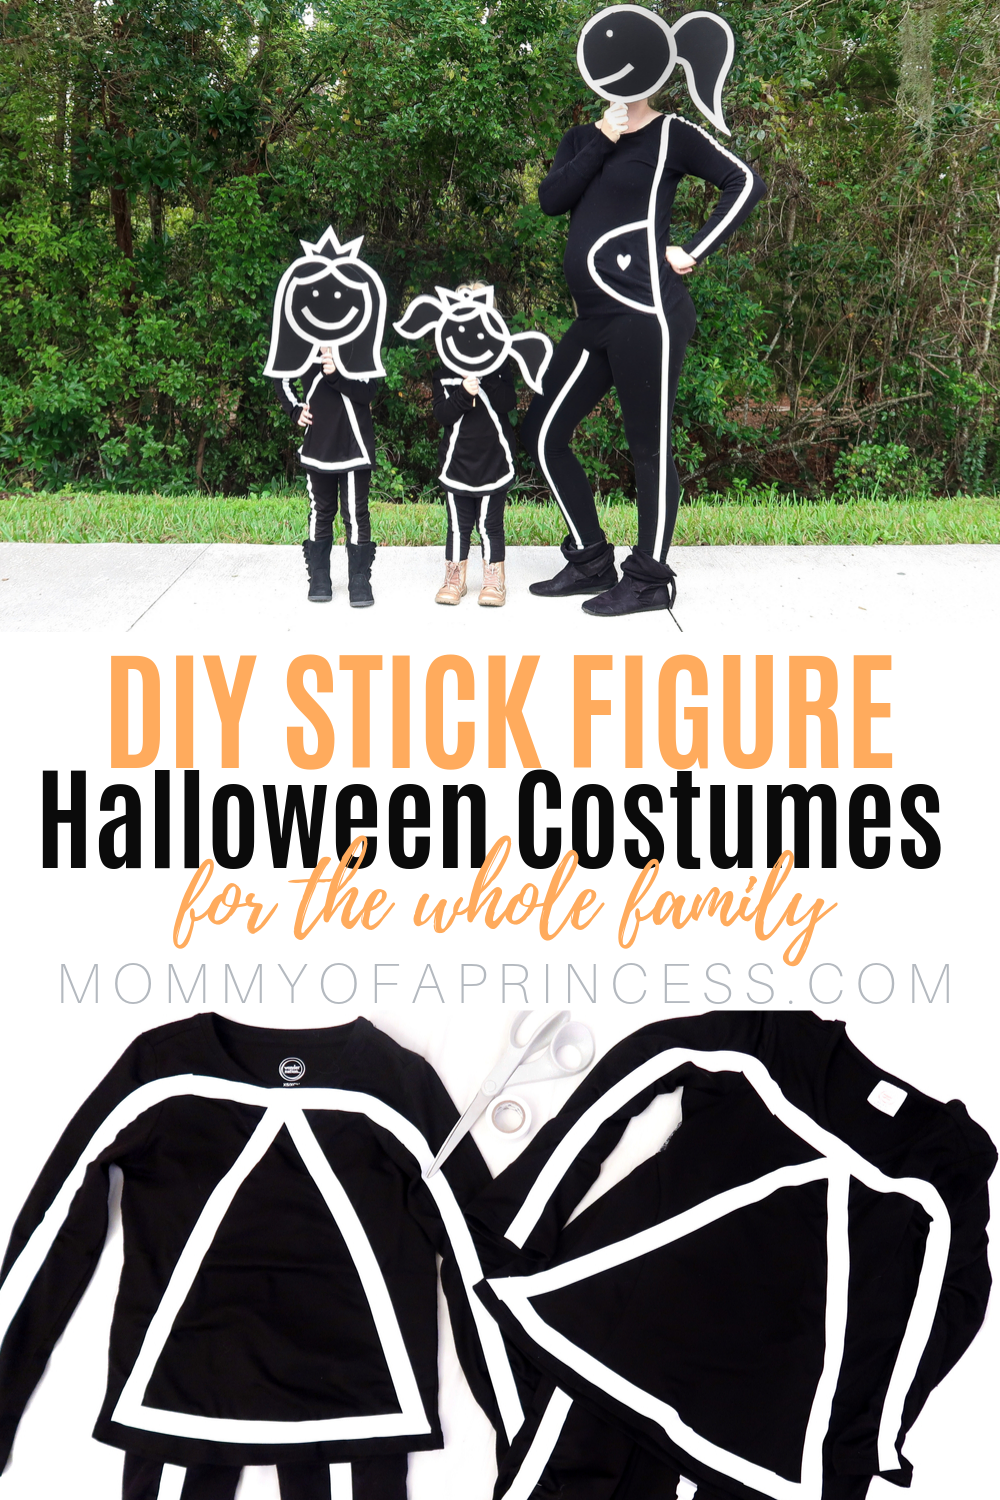 Easy DIY Stick Figure Halloween Costume for the Wh